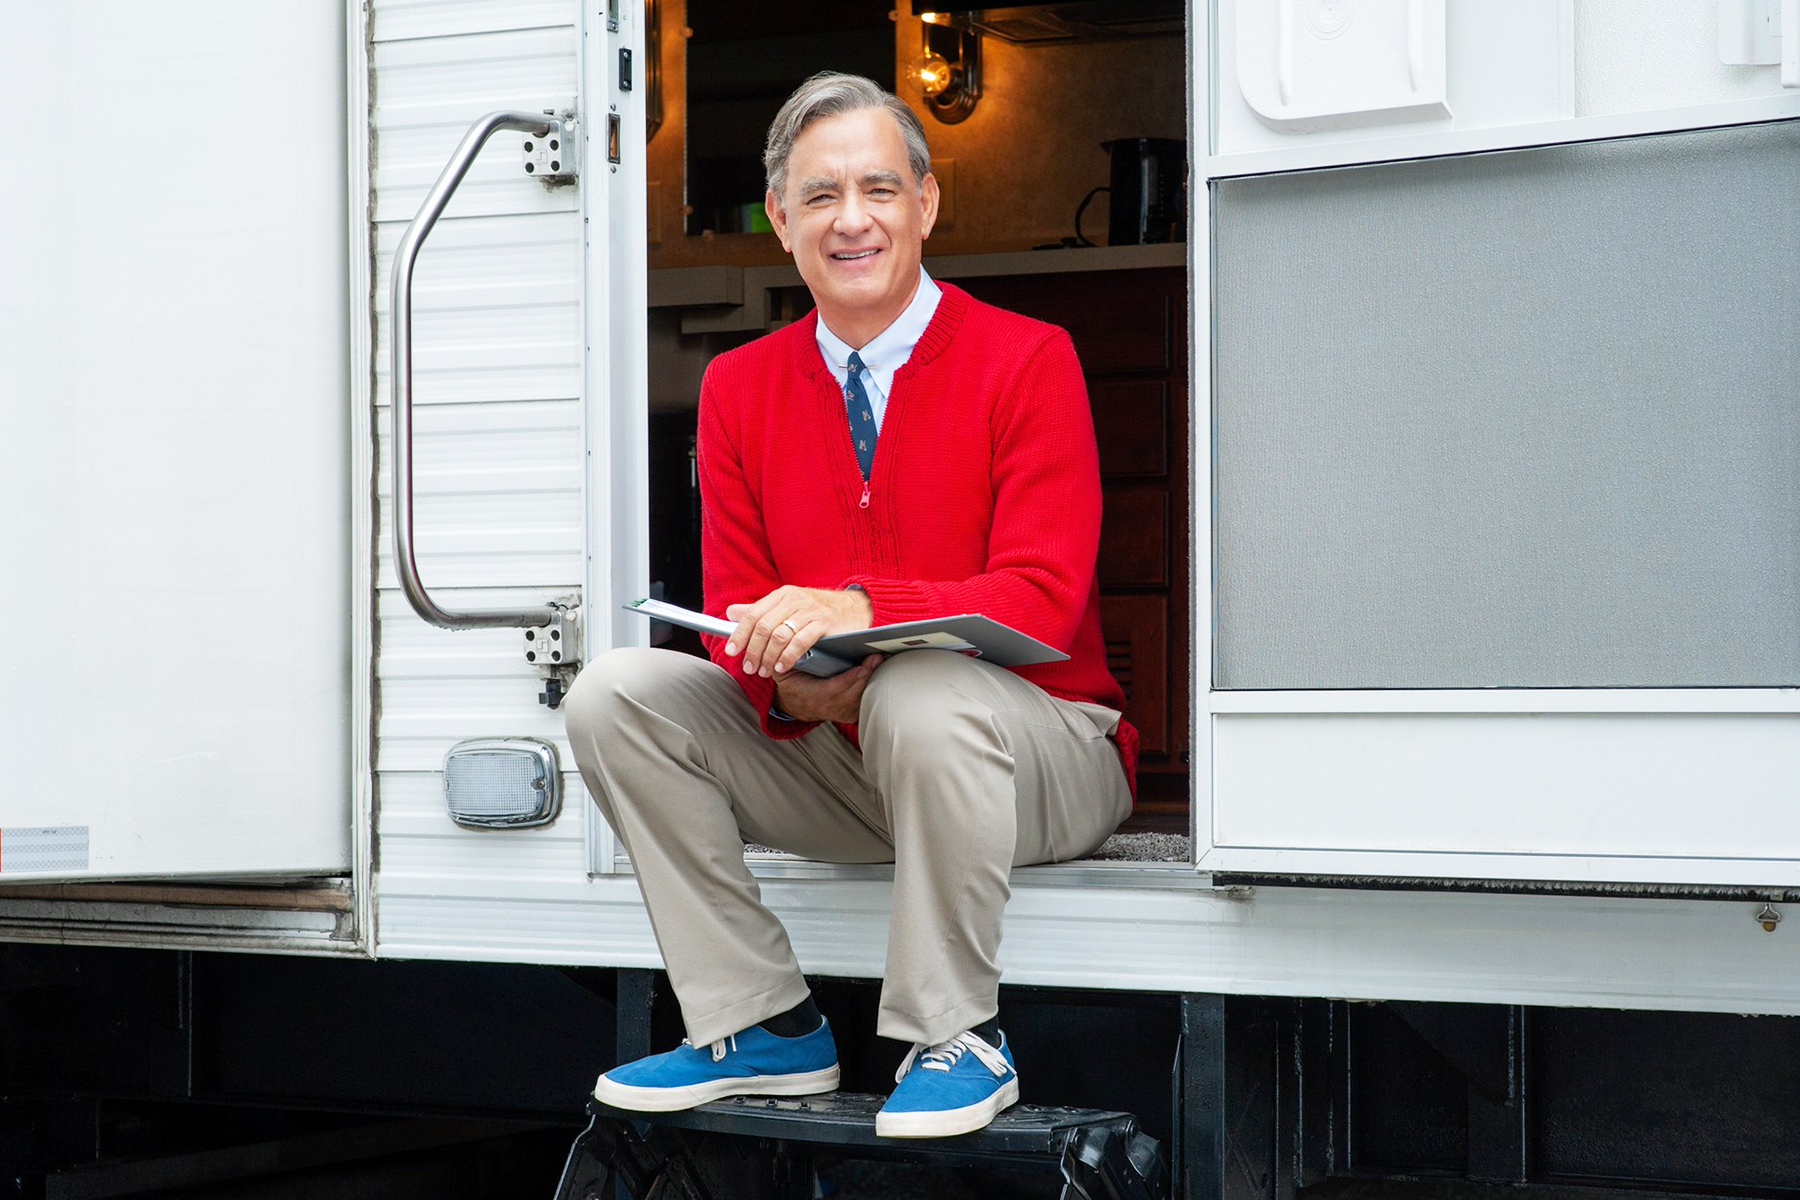 Tom Trailer Tom Hanks As Mr Rogers In First Look At Upcoming Biopic Rolling